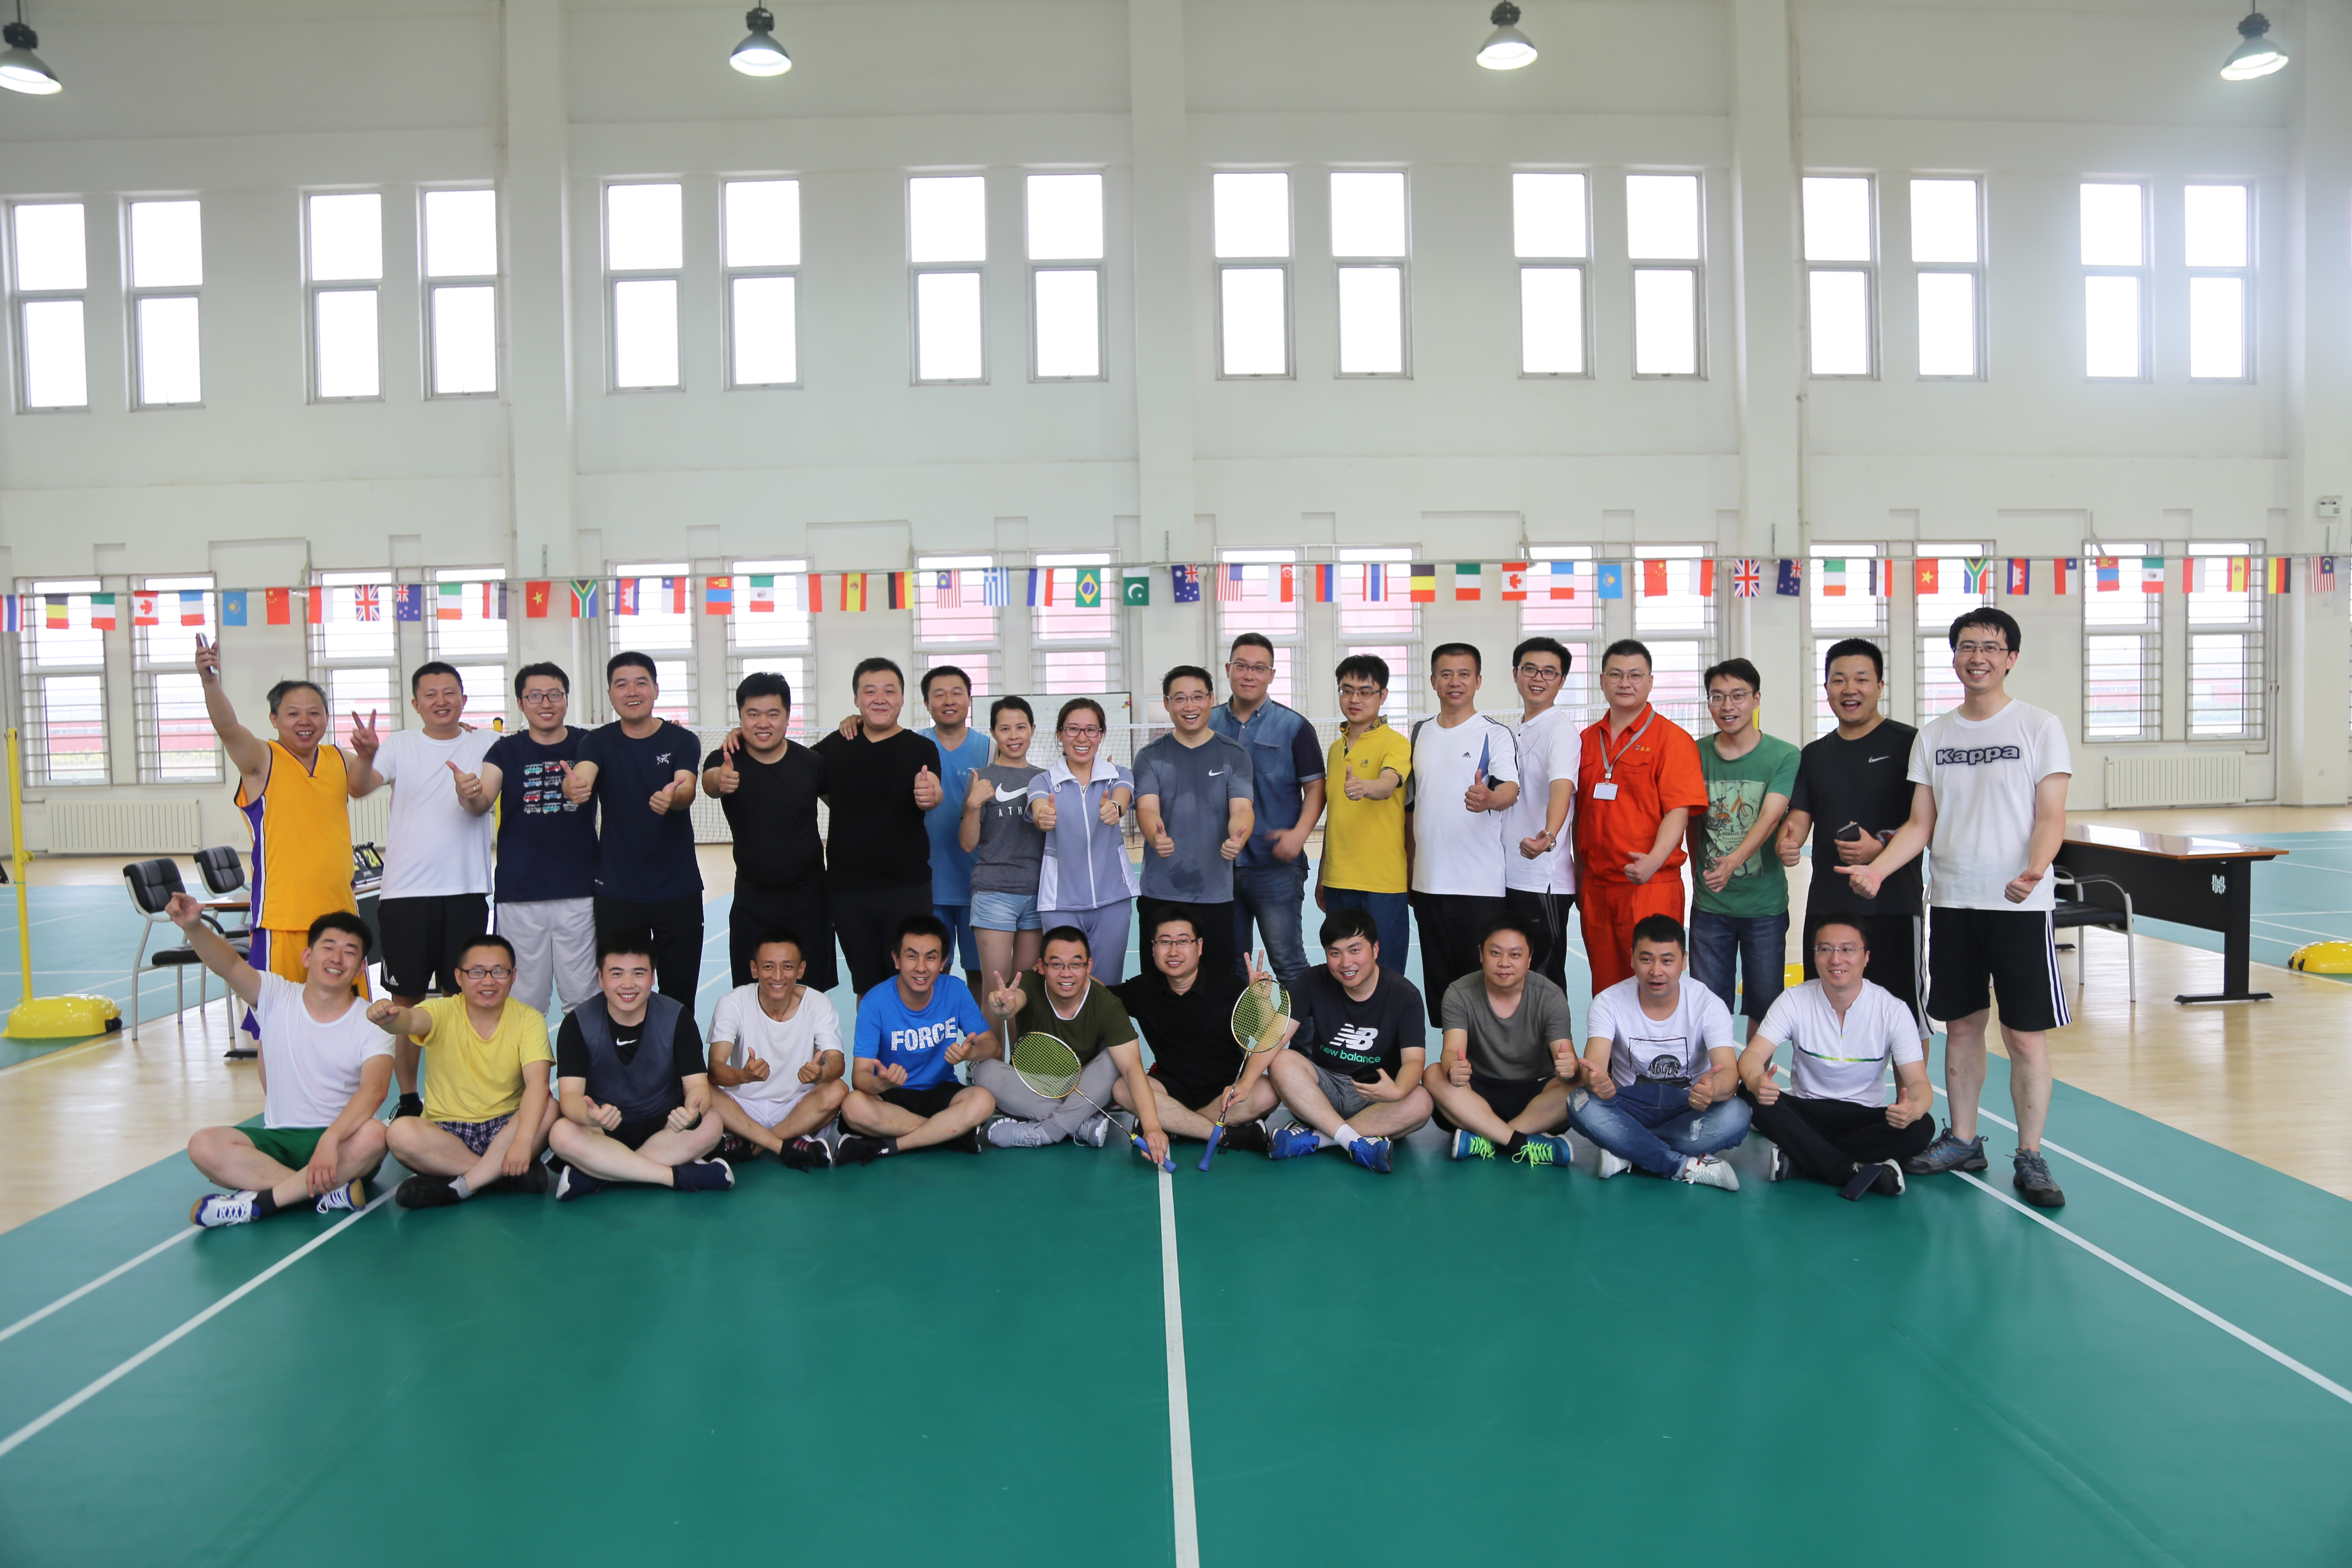 The company organized and carried out badminton competition activities for the management team